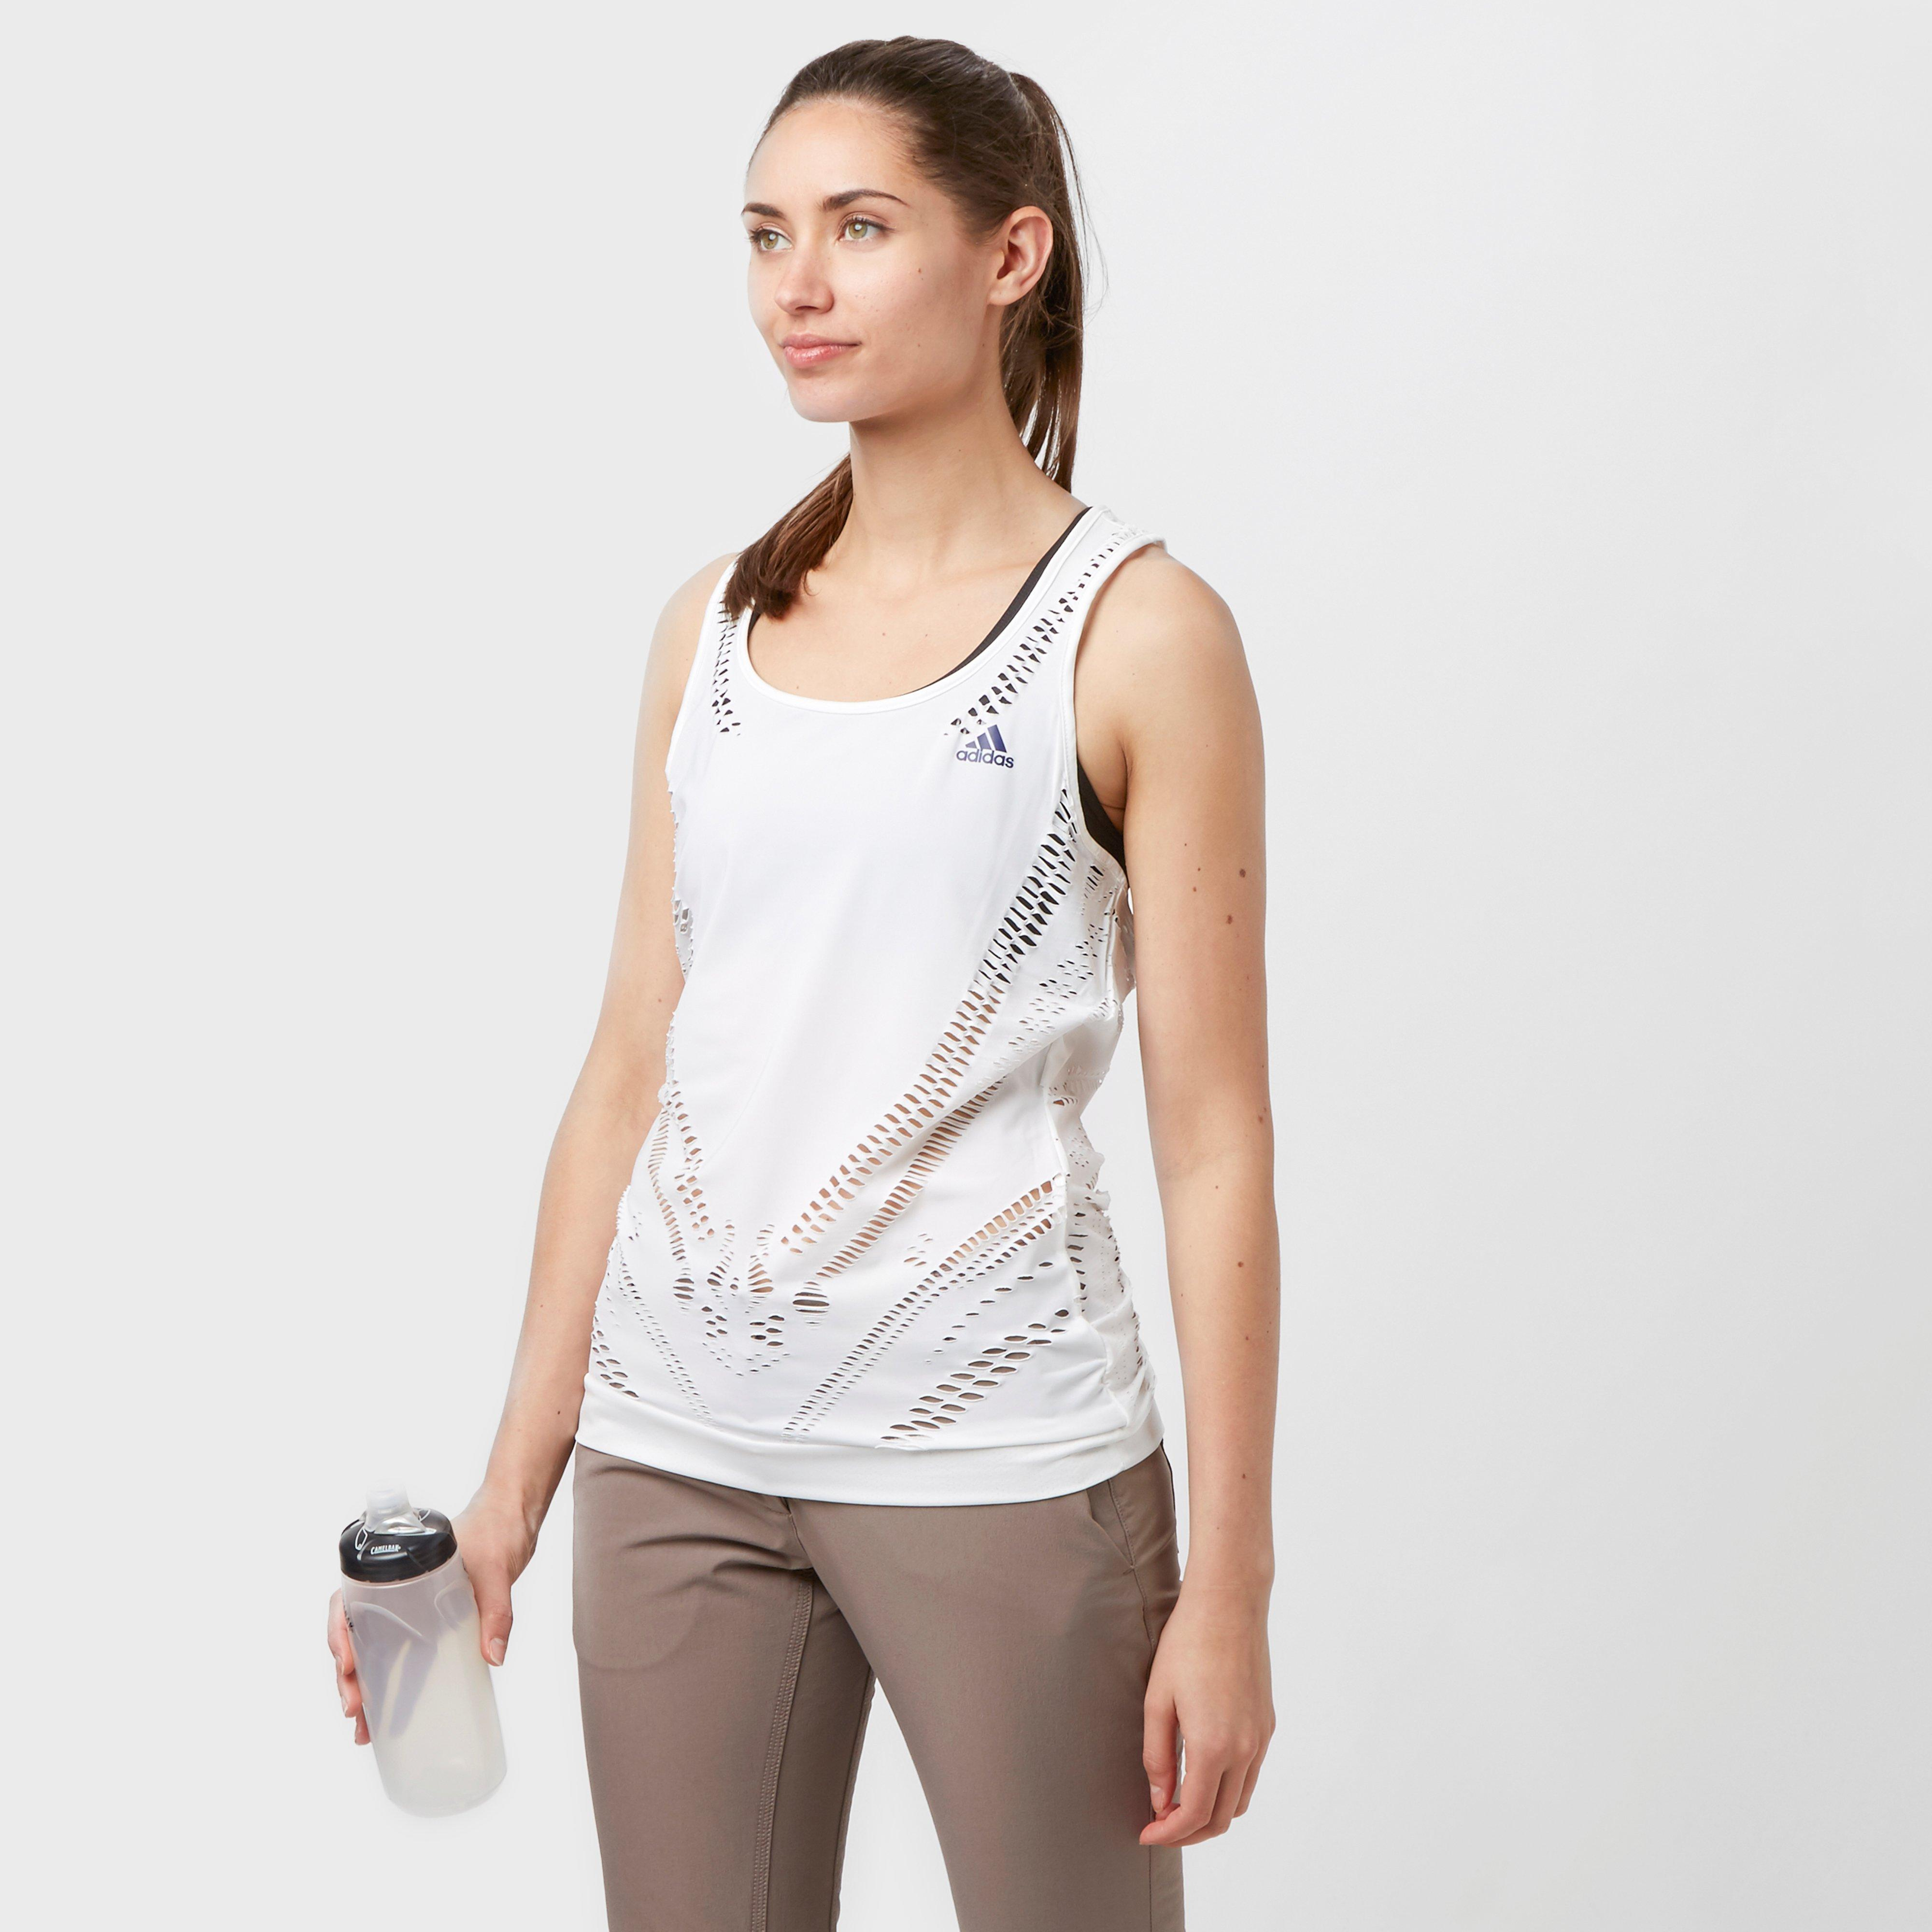 Adidas Womens Climacool Tank Top White